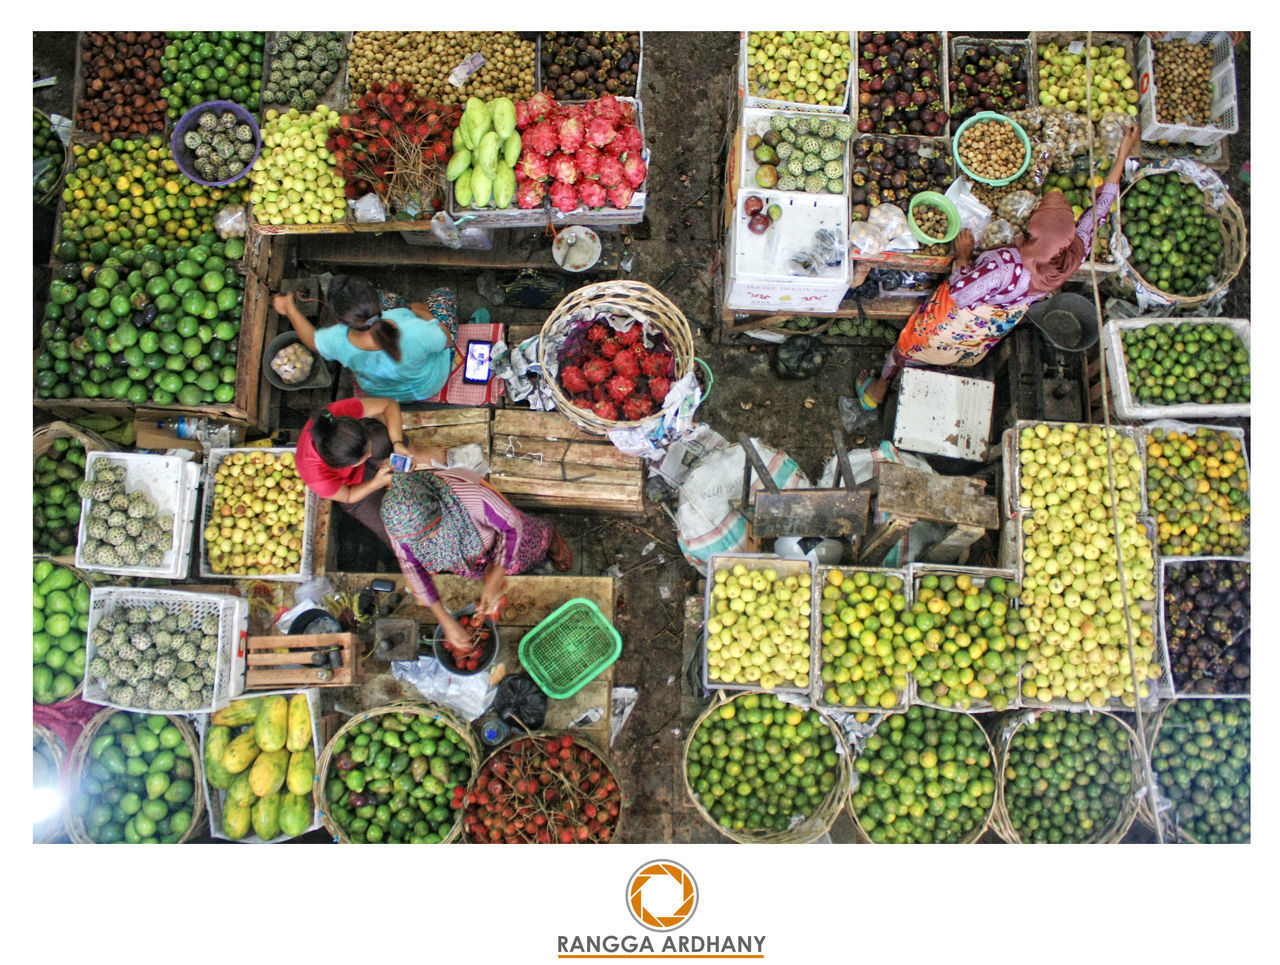 de Market Lombok Abundance Arrangement Choice Consumerism Day Food For Sale Freshness Fruit High Angle View Large Group Of Objects Leaf Market Market Stall Multi Colored Nature No People Outdoors Retail  Variation Vegetable